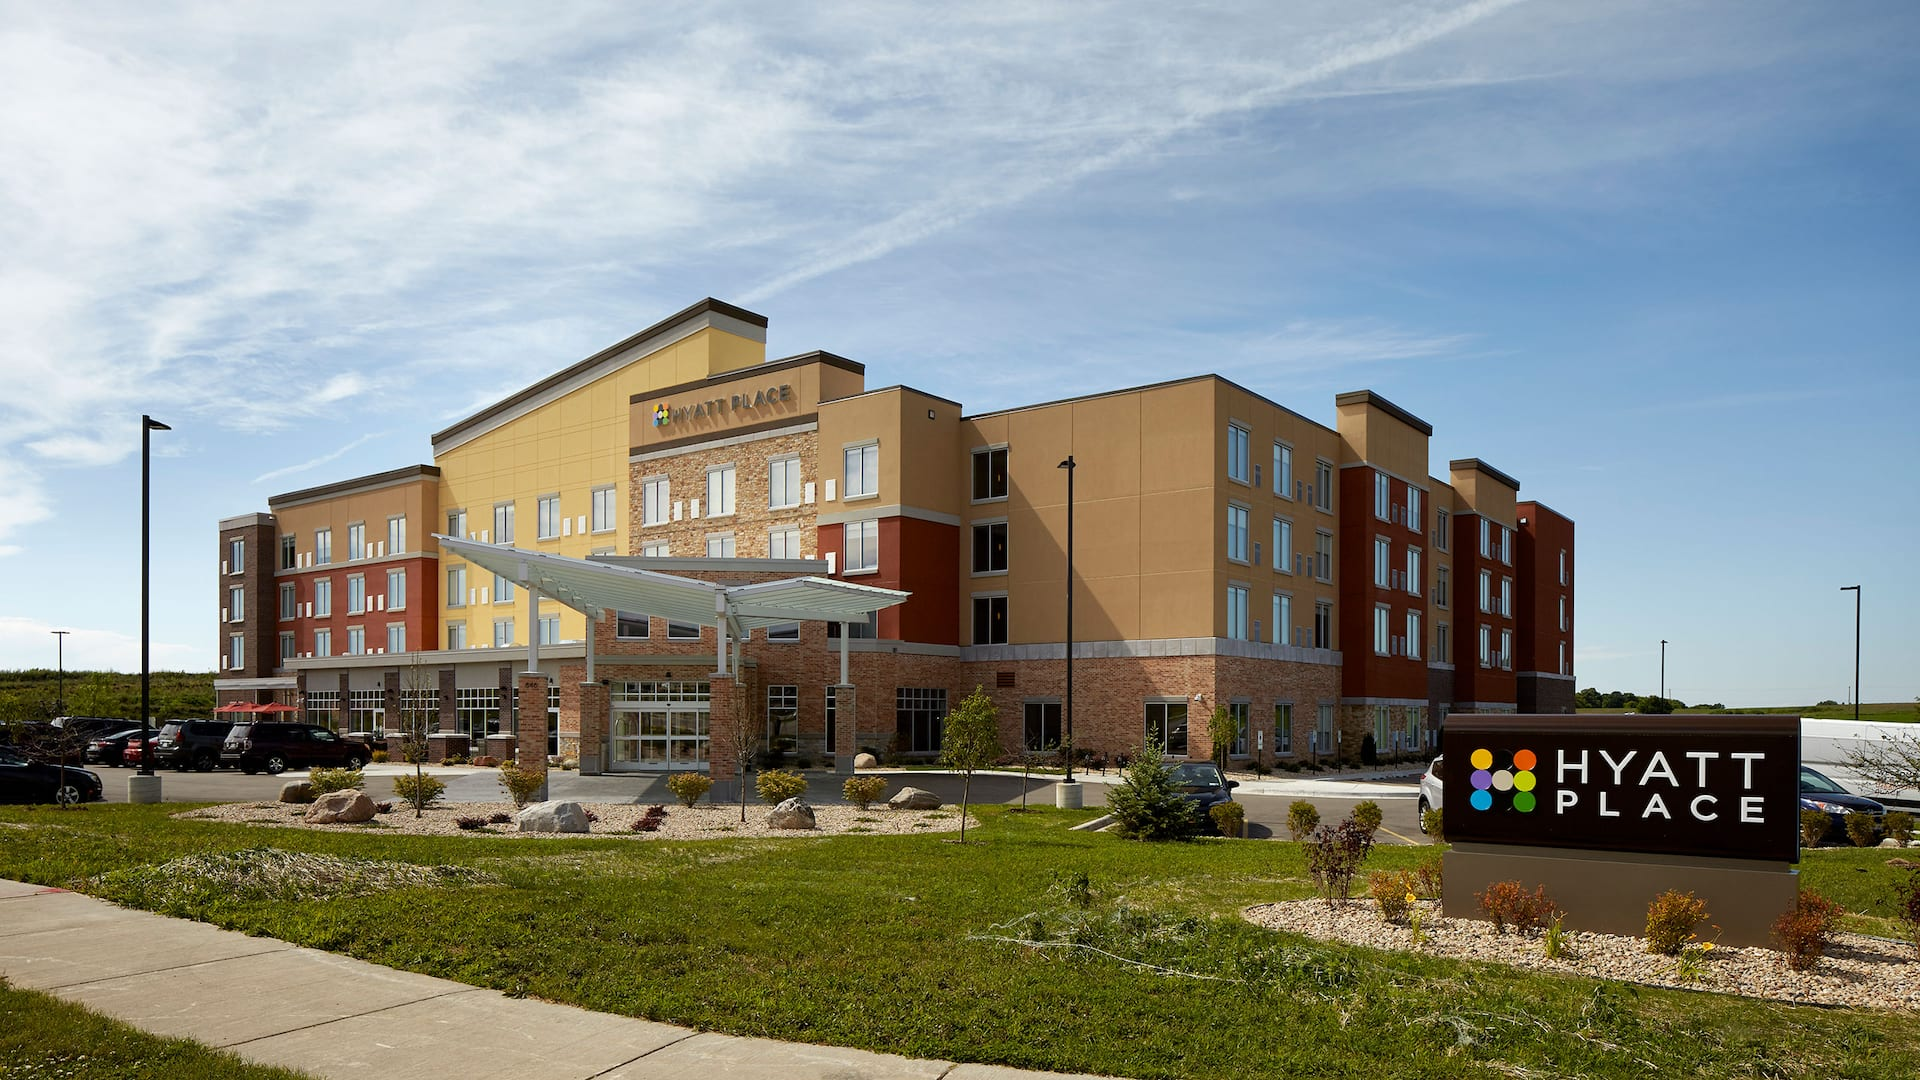 Hyatt Place Madison/Verona Exterior